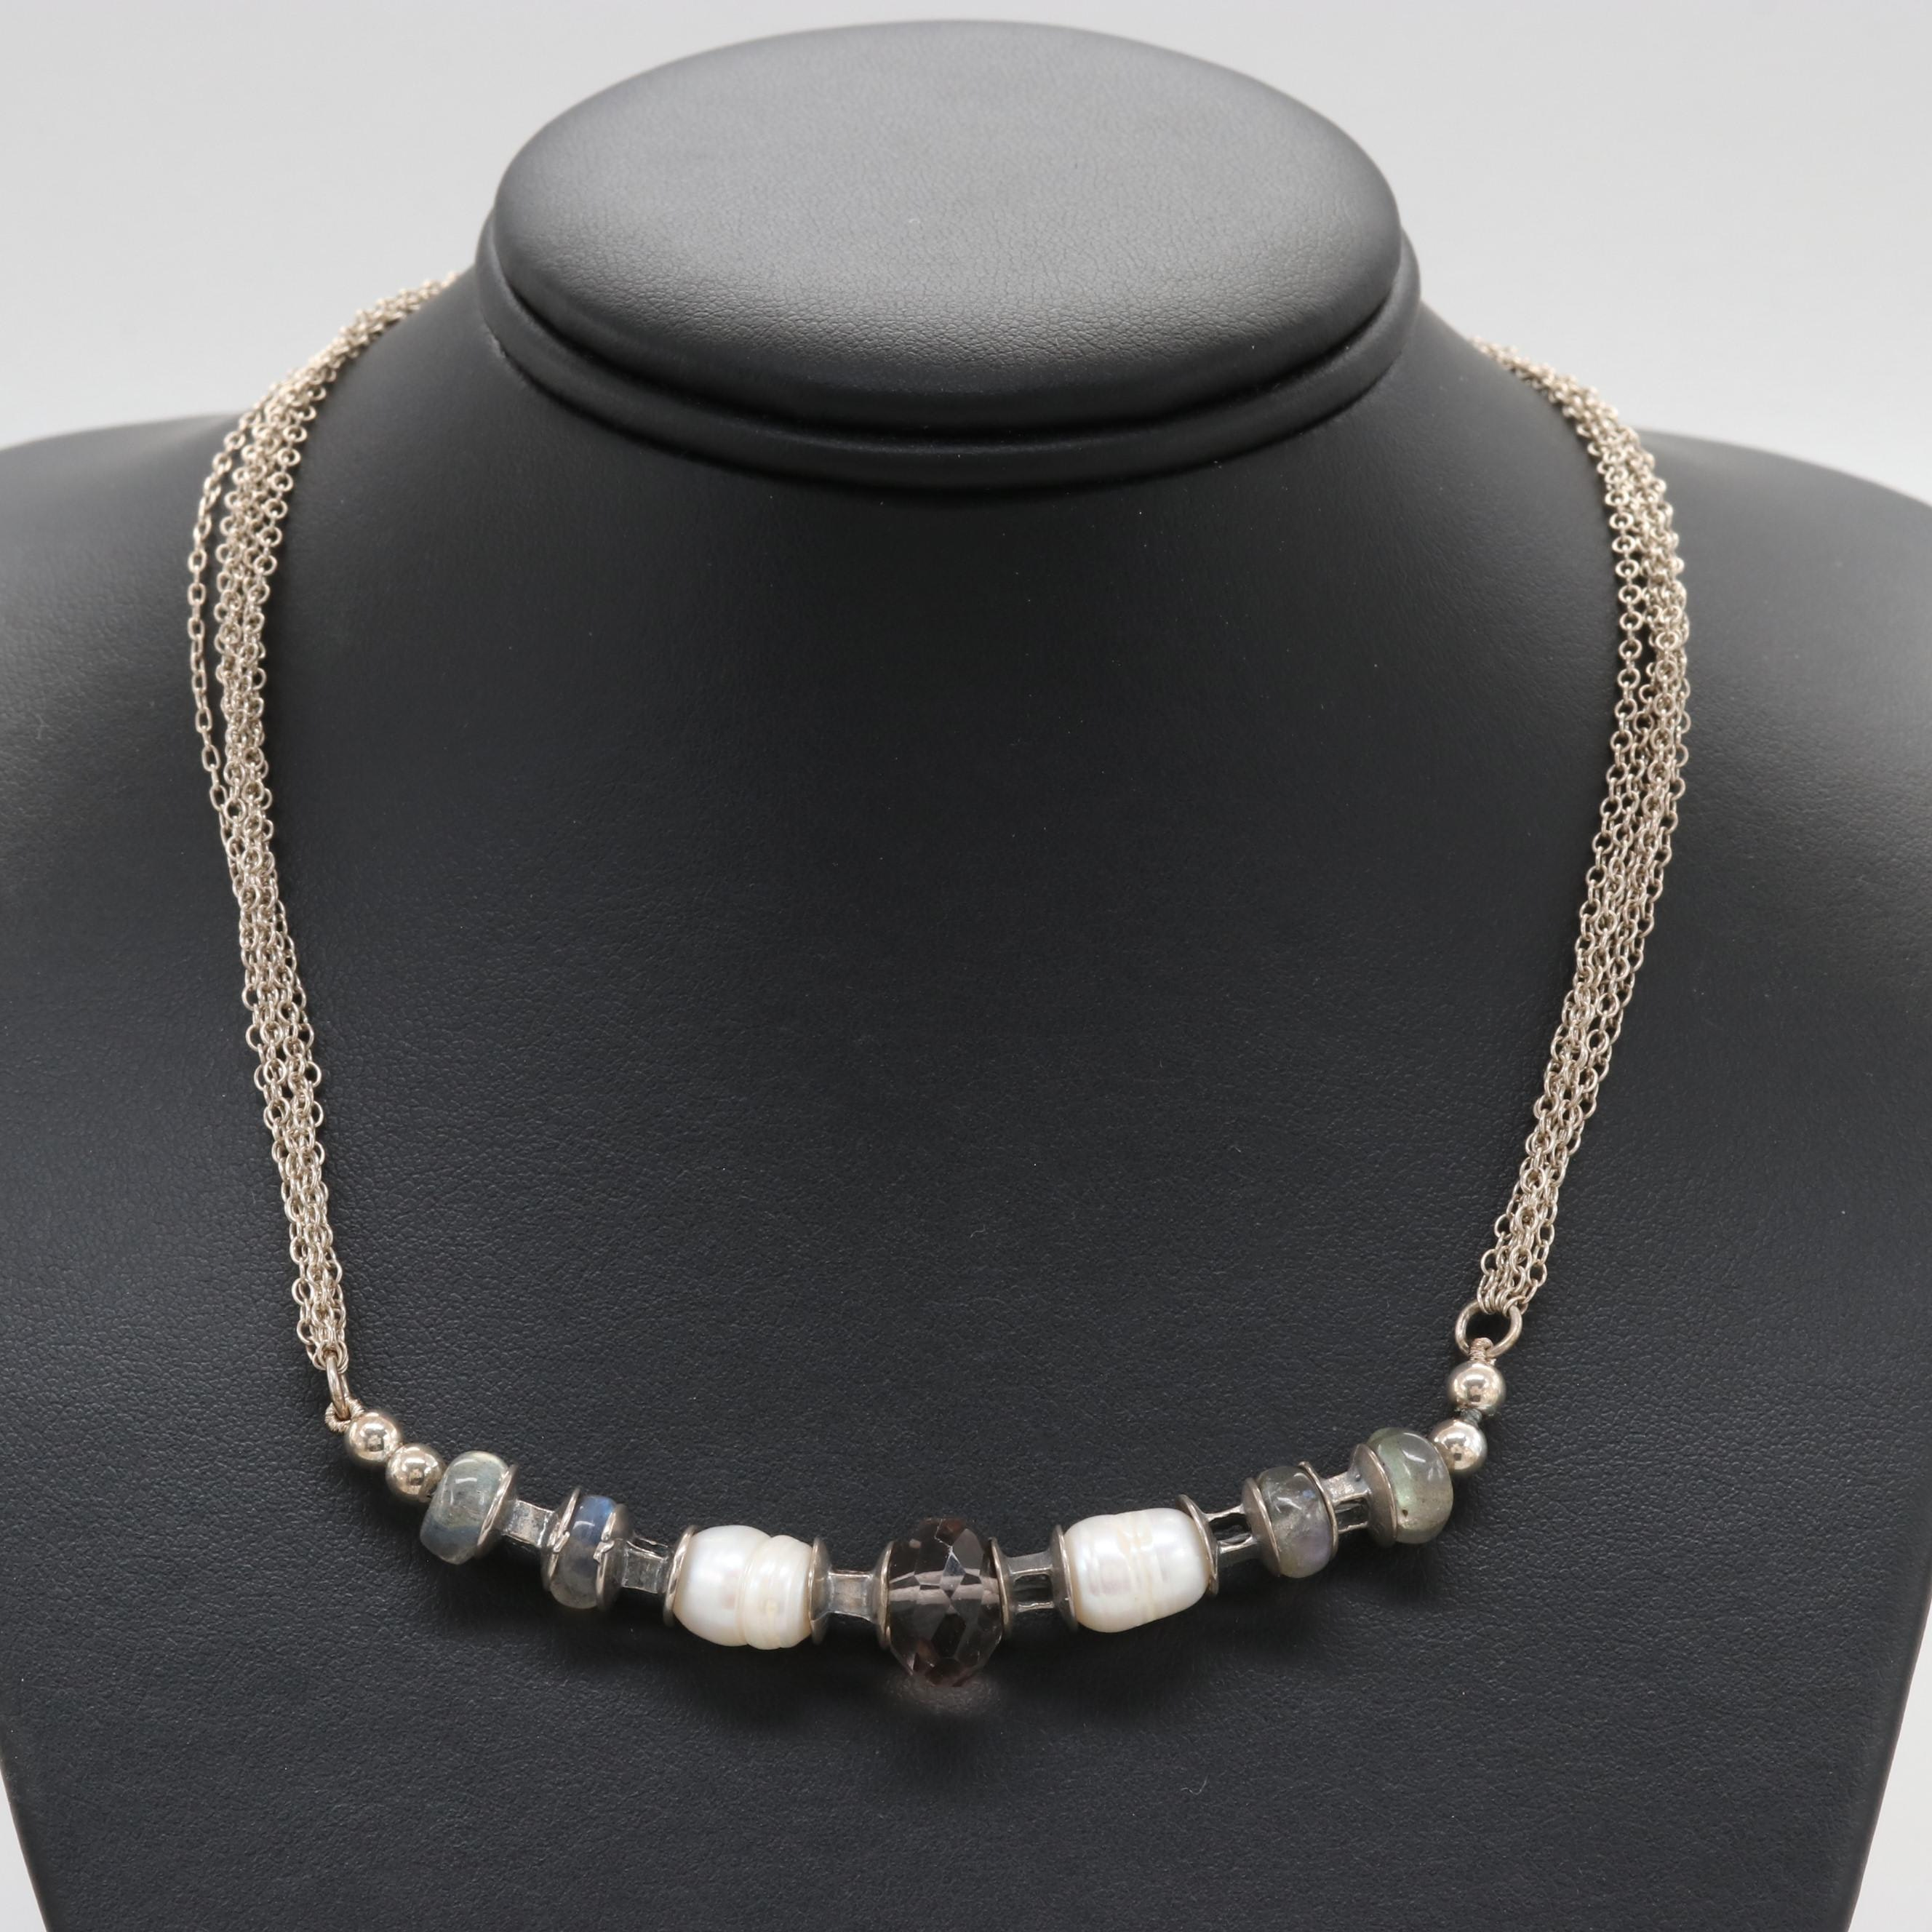 Sterling Silver Quartz, Cultured Pearl, and Labradorite Necklace